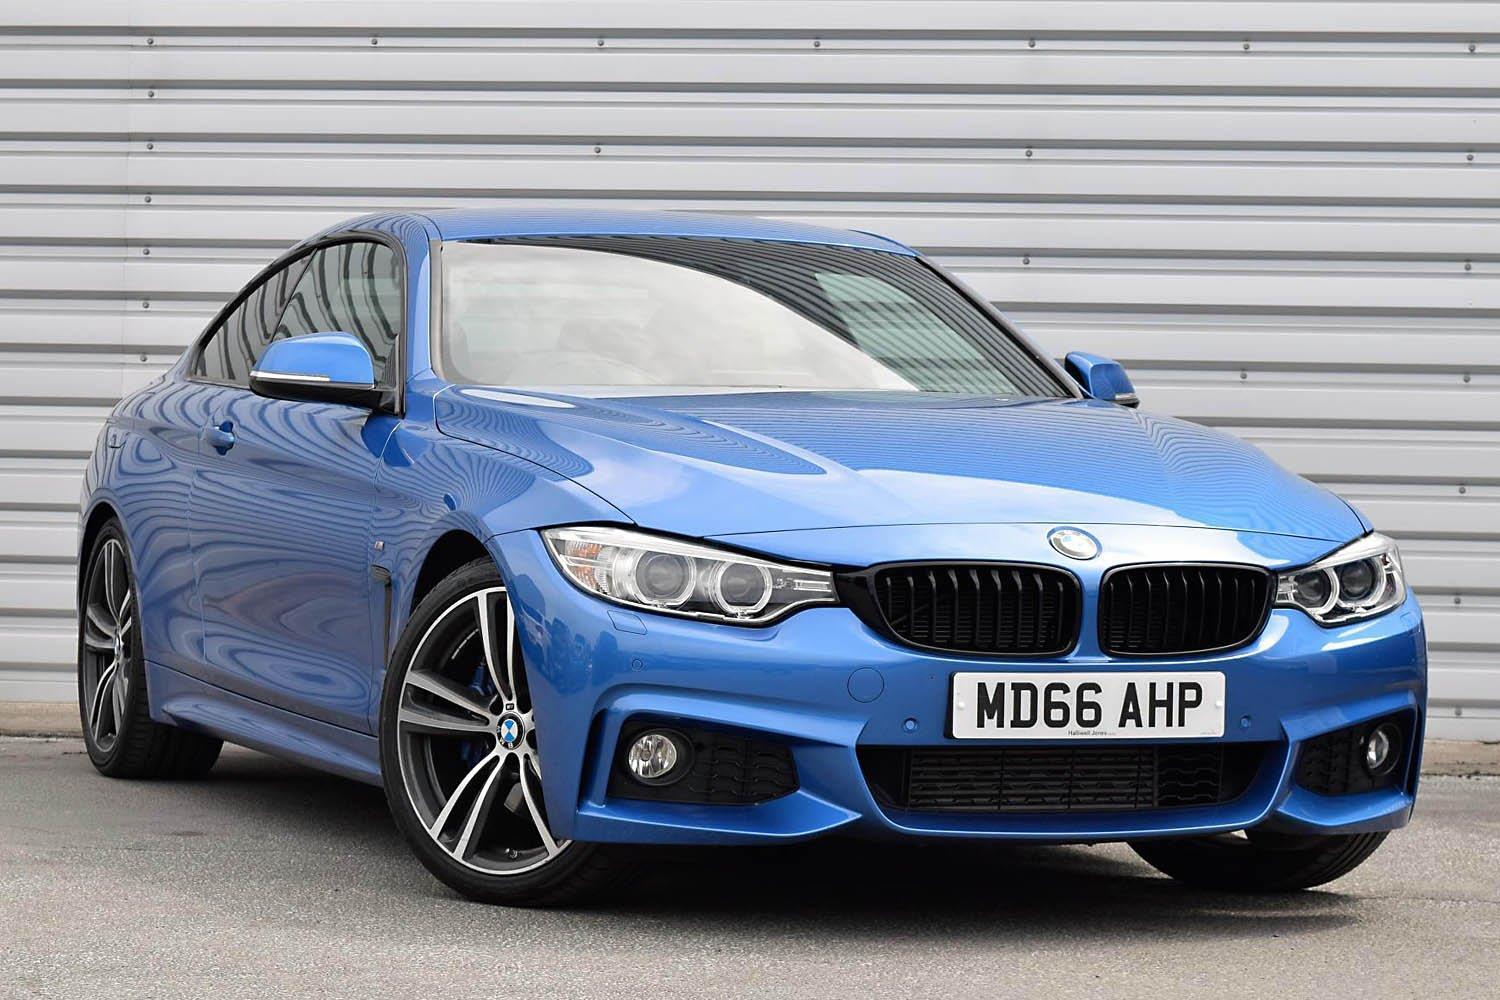 BMW 4 Series Coupé MD66AHP - Image 9